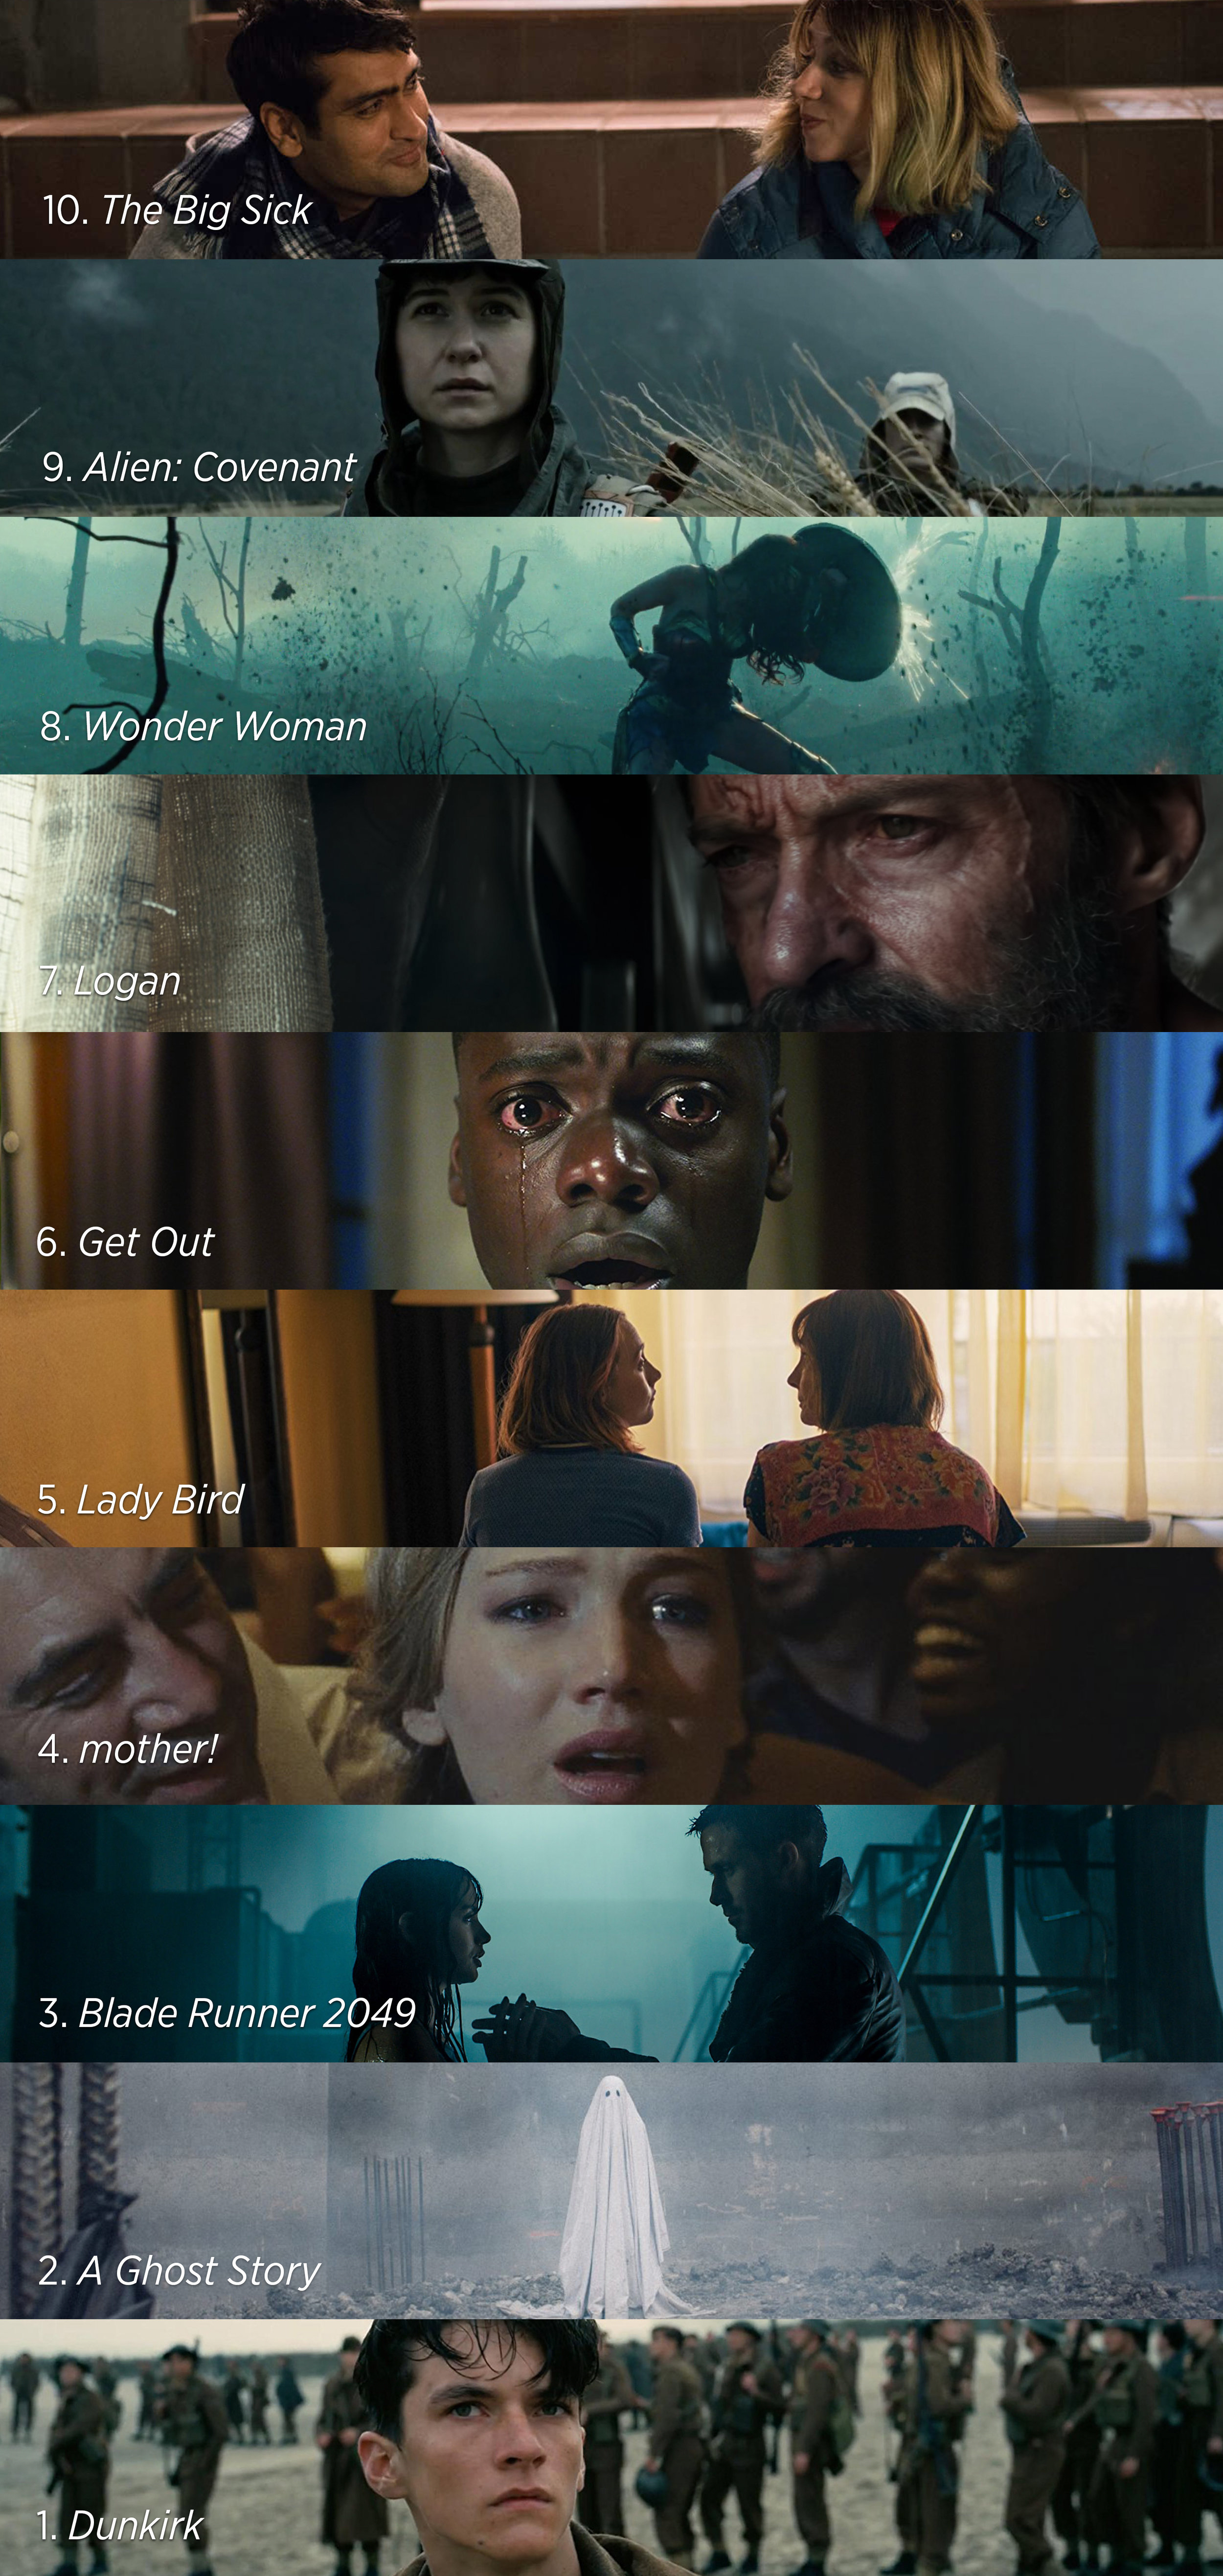 Dunkirk ,  A Ghost Story ,  Blade Runner 2049 ,  mother! ,  Lady Bird ,  Get Out ,  Logan ,  Wonder Woman ,  Alien: Covenant ,  The Big Sick    Honorable Mention:   The Shape of Water